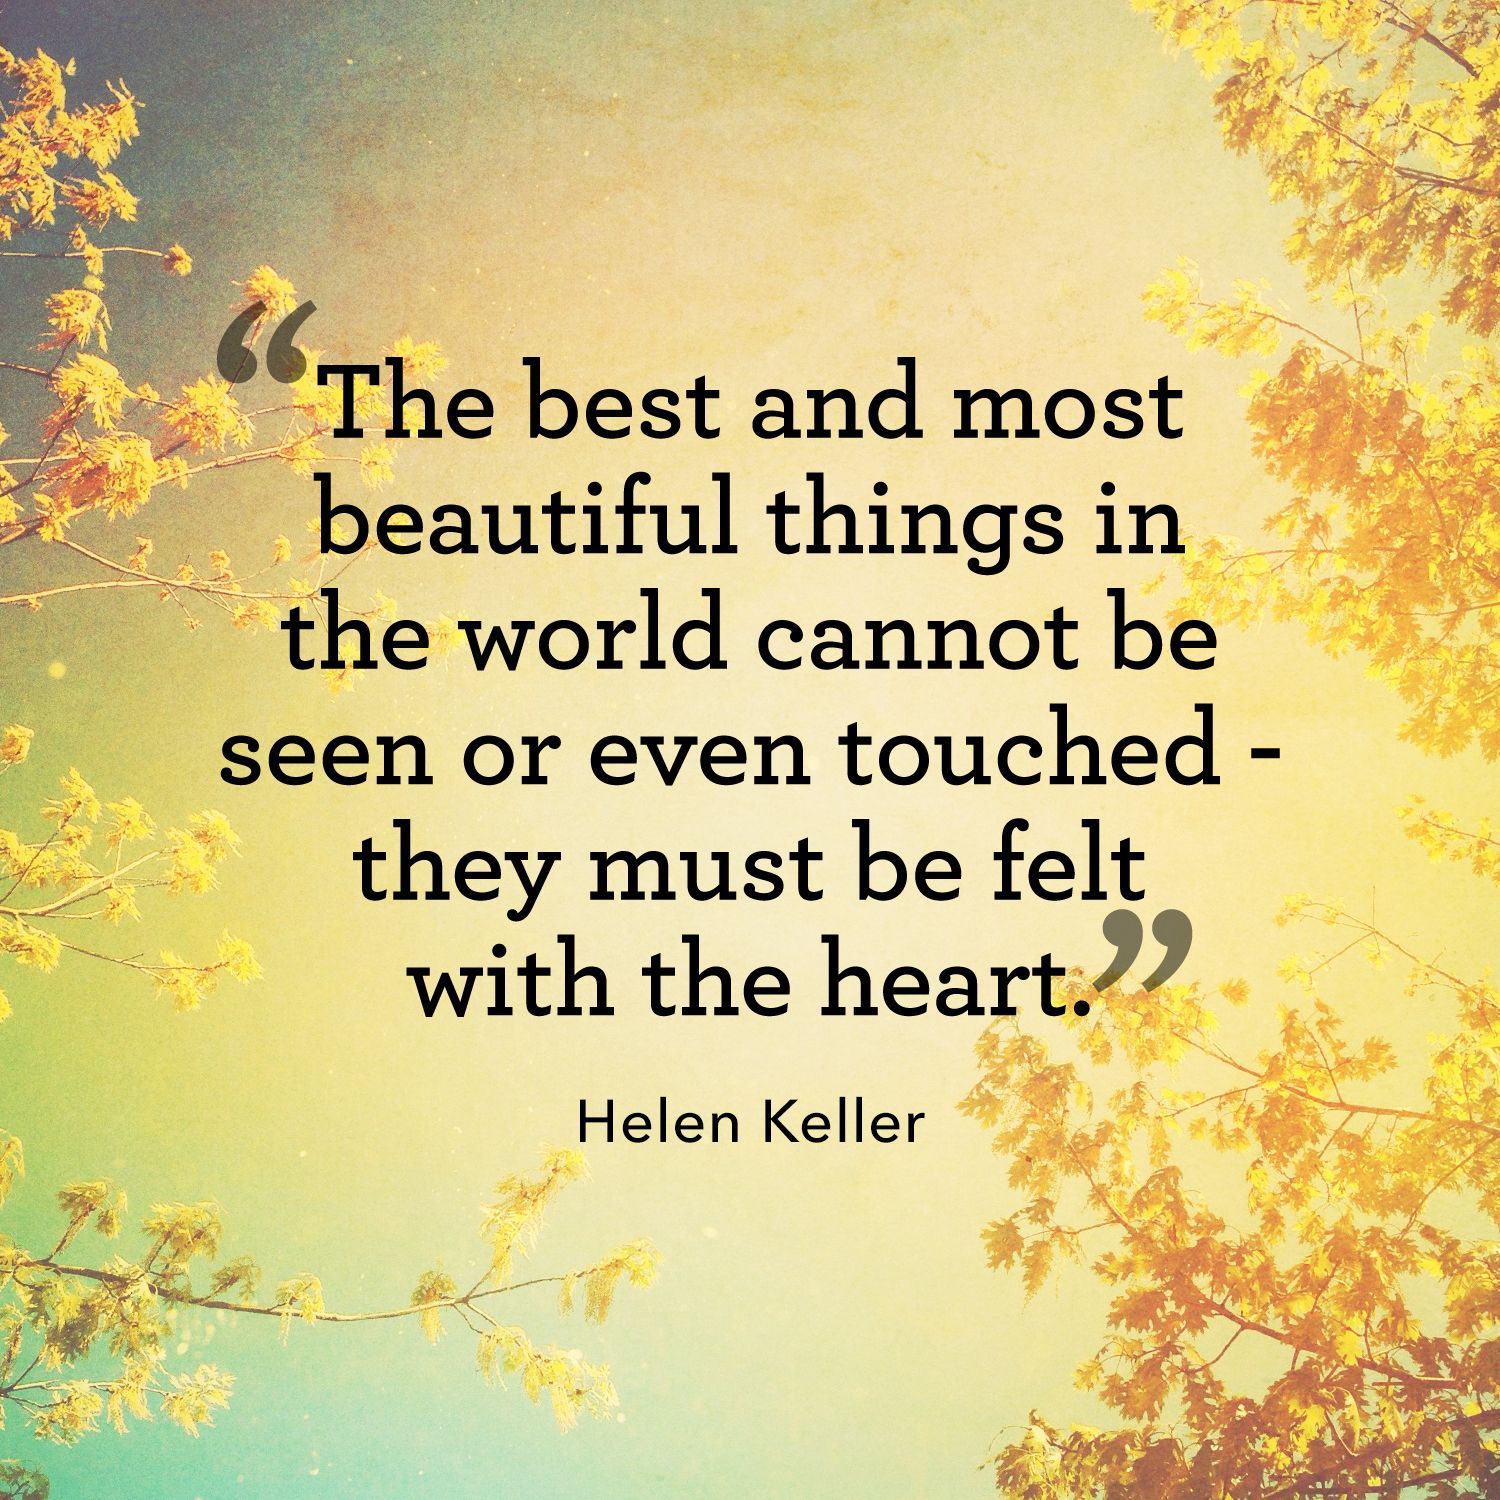 "<p>""The best and most beautiful things in the world cannot be seen or even touched—they must be felt with the heart.""</p>"